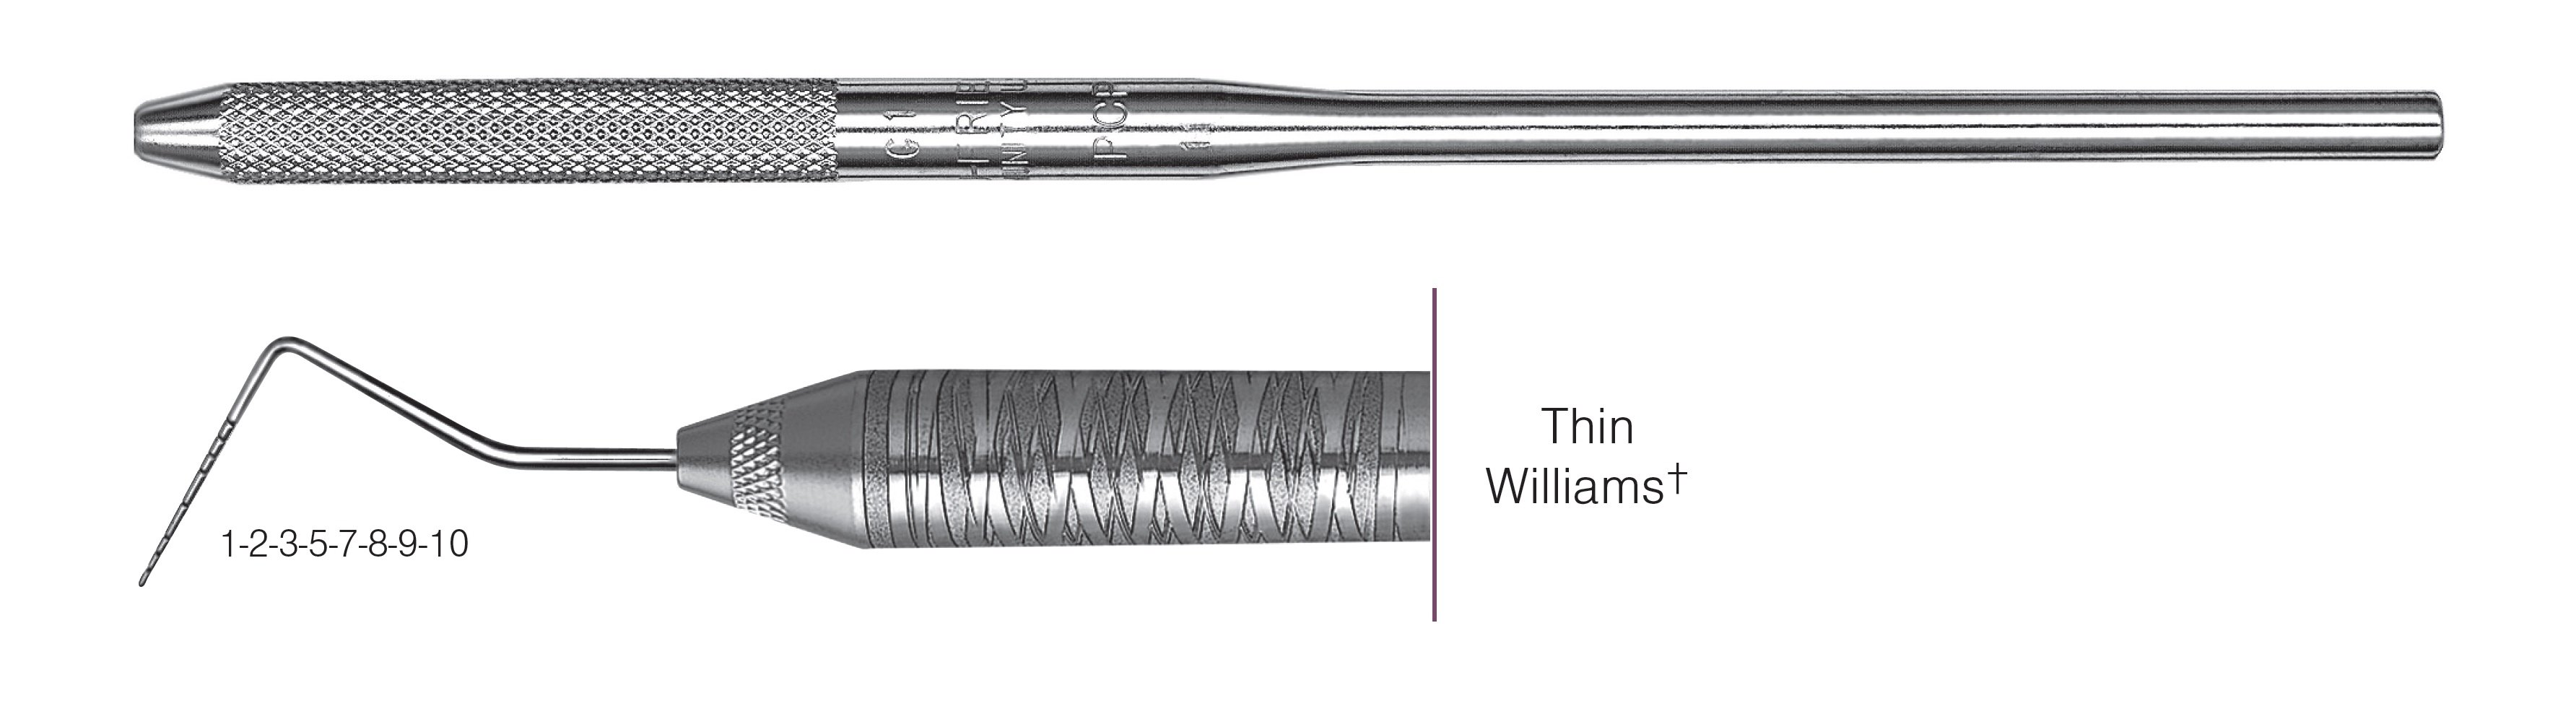 HF-POW6-30, SINGLE-ENDED PROBES Thin Williams+, Black markings, 1-2-3-5-7-8-9-10 mm, Handle round, Single End